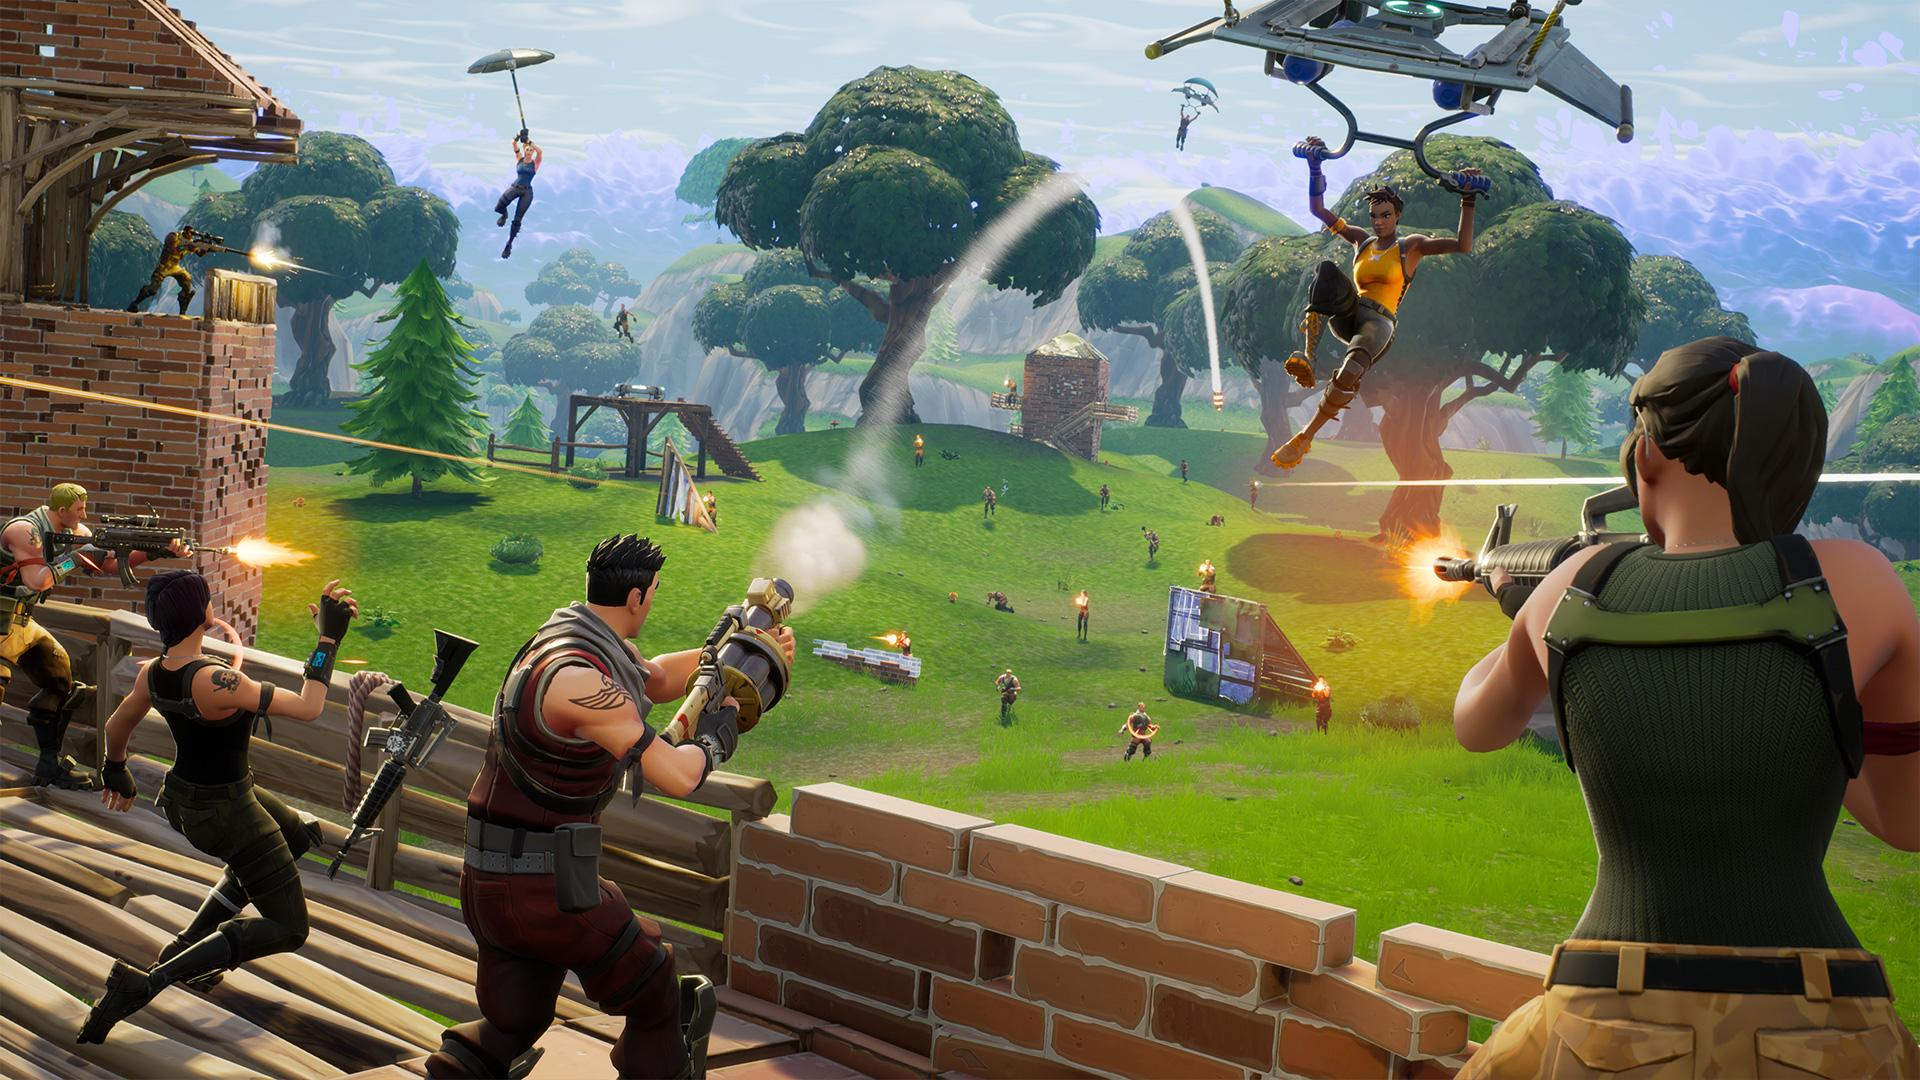 Un ex impiegato di Epic Games tentò di cancellare Fortnite